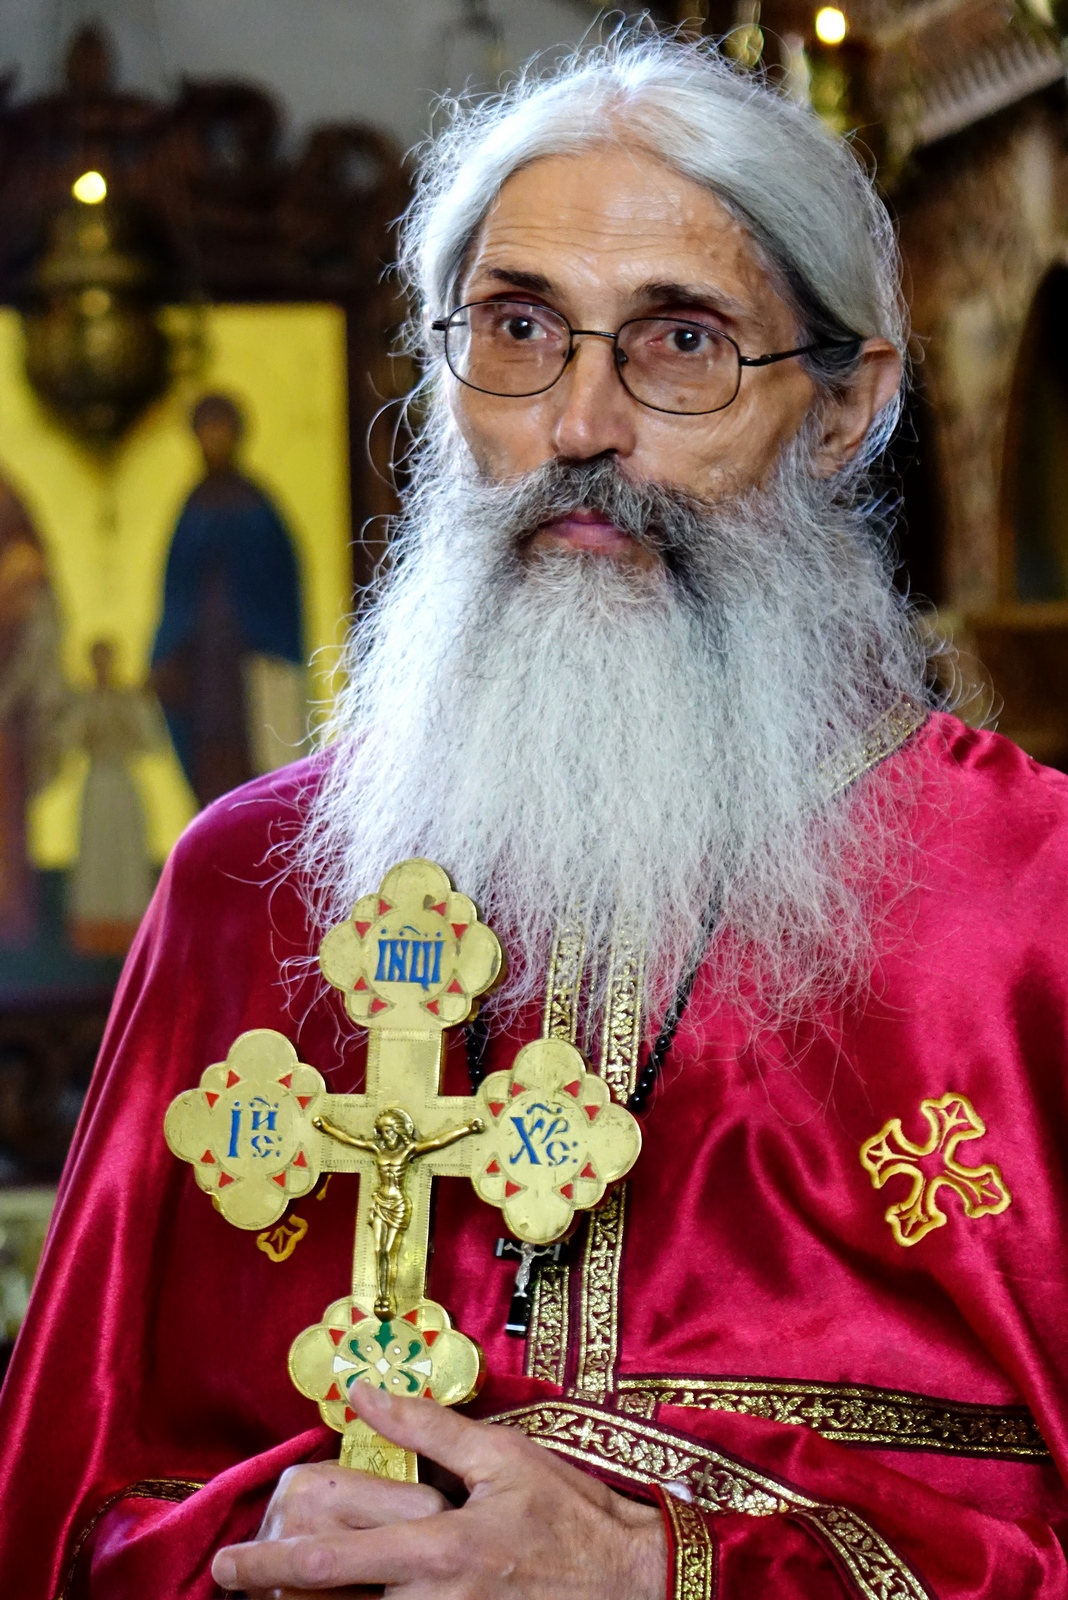 The rector of St. John the Baptist Orthodox church